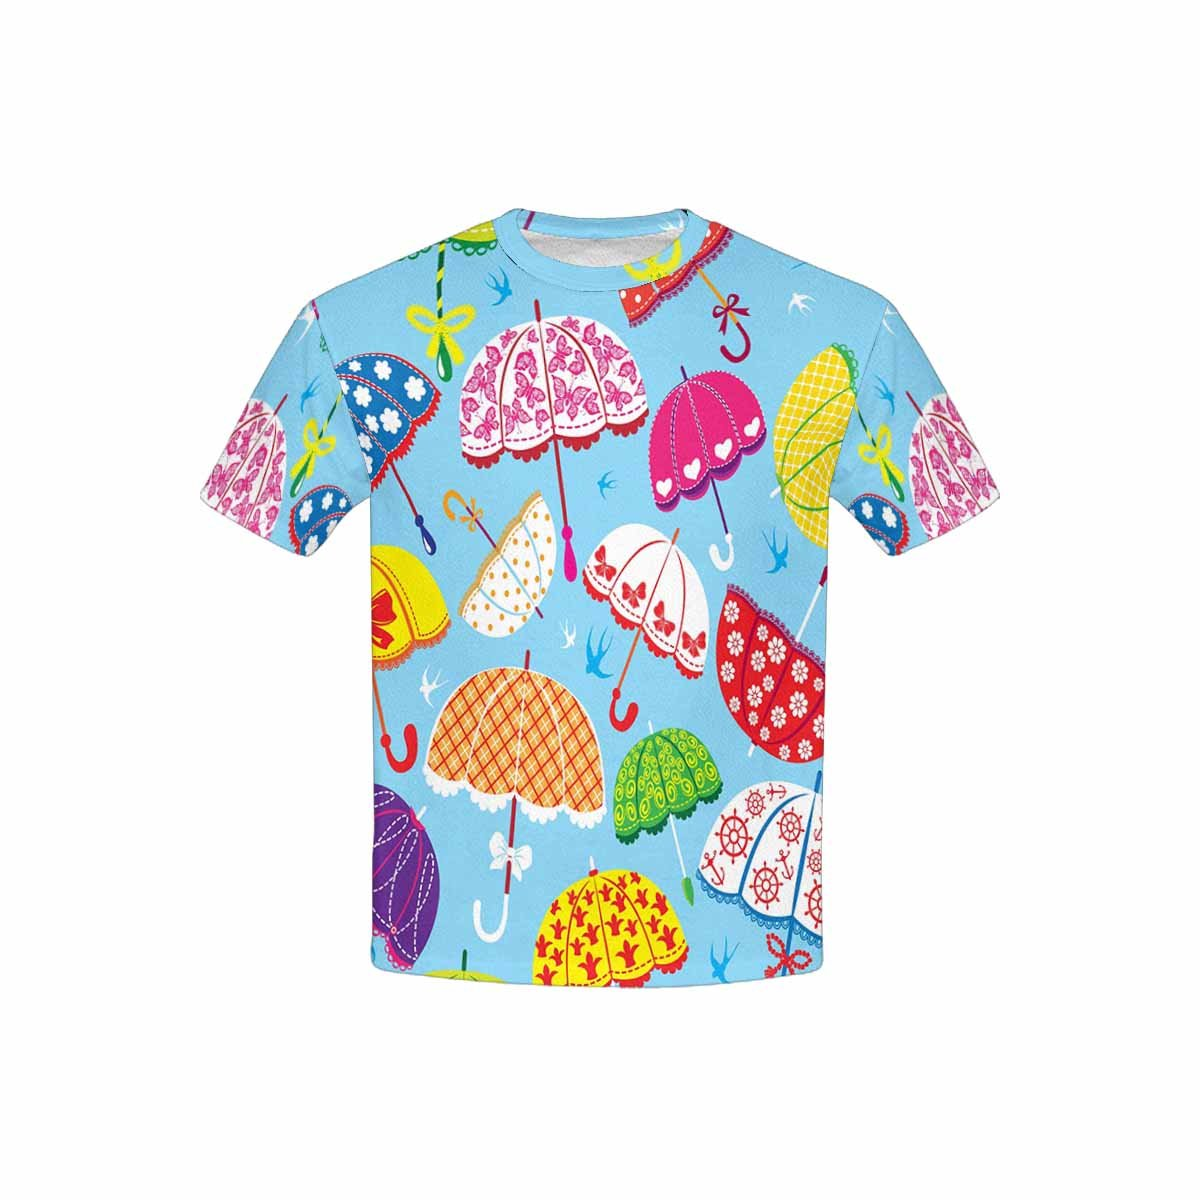 XS-XL INTERESTPRINT Kids T-Shirts Colorful Umbrellas